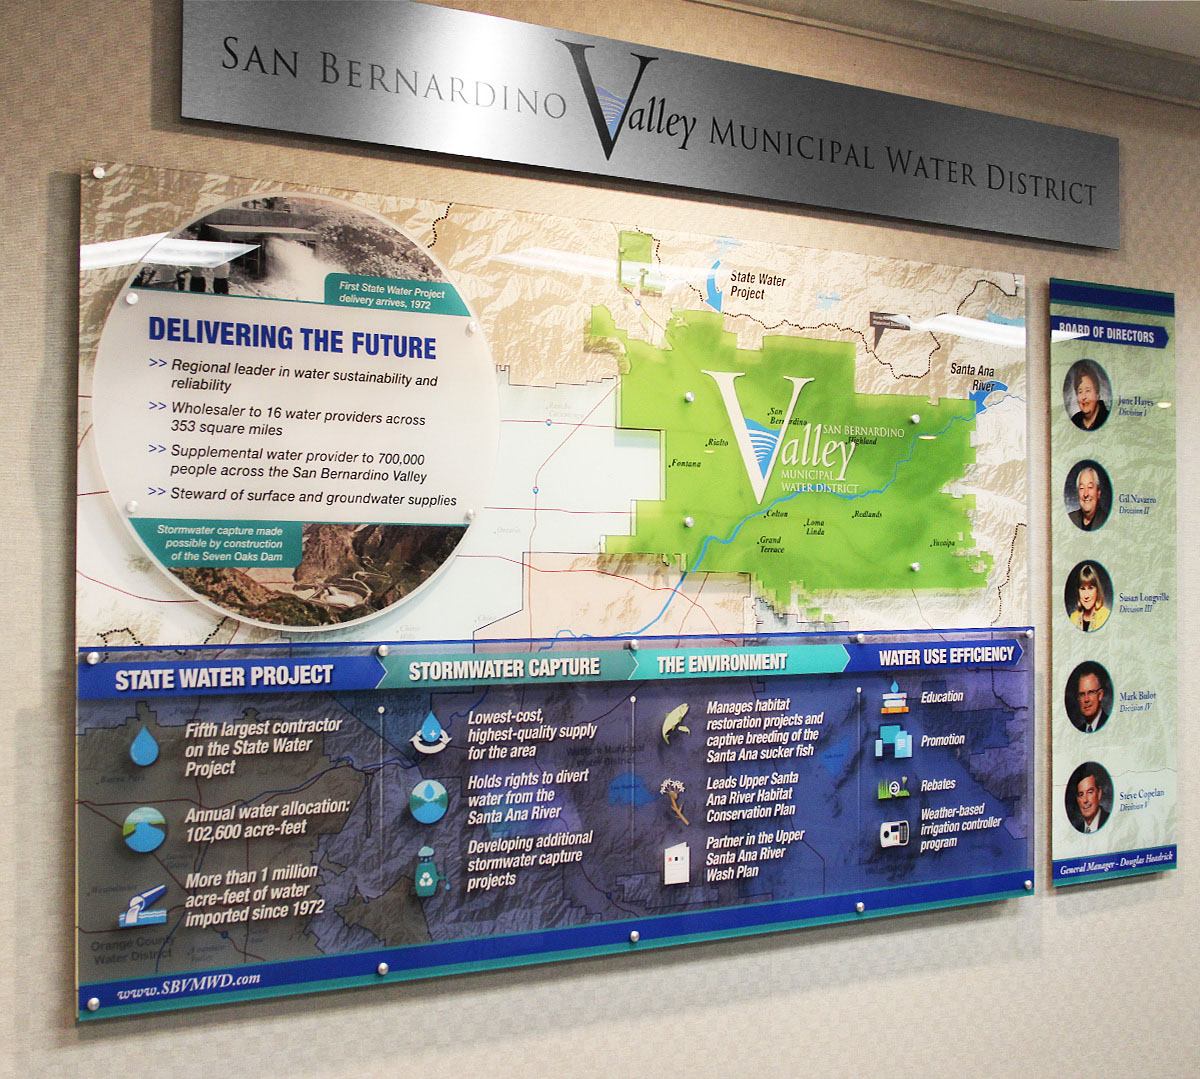 San Bernardino Valley Municipal Water District Acrylic Display